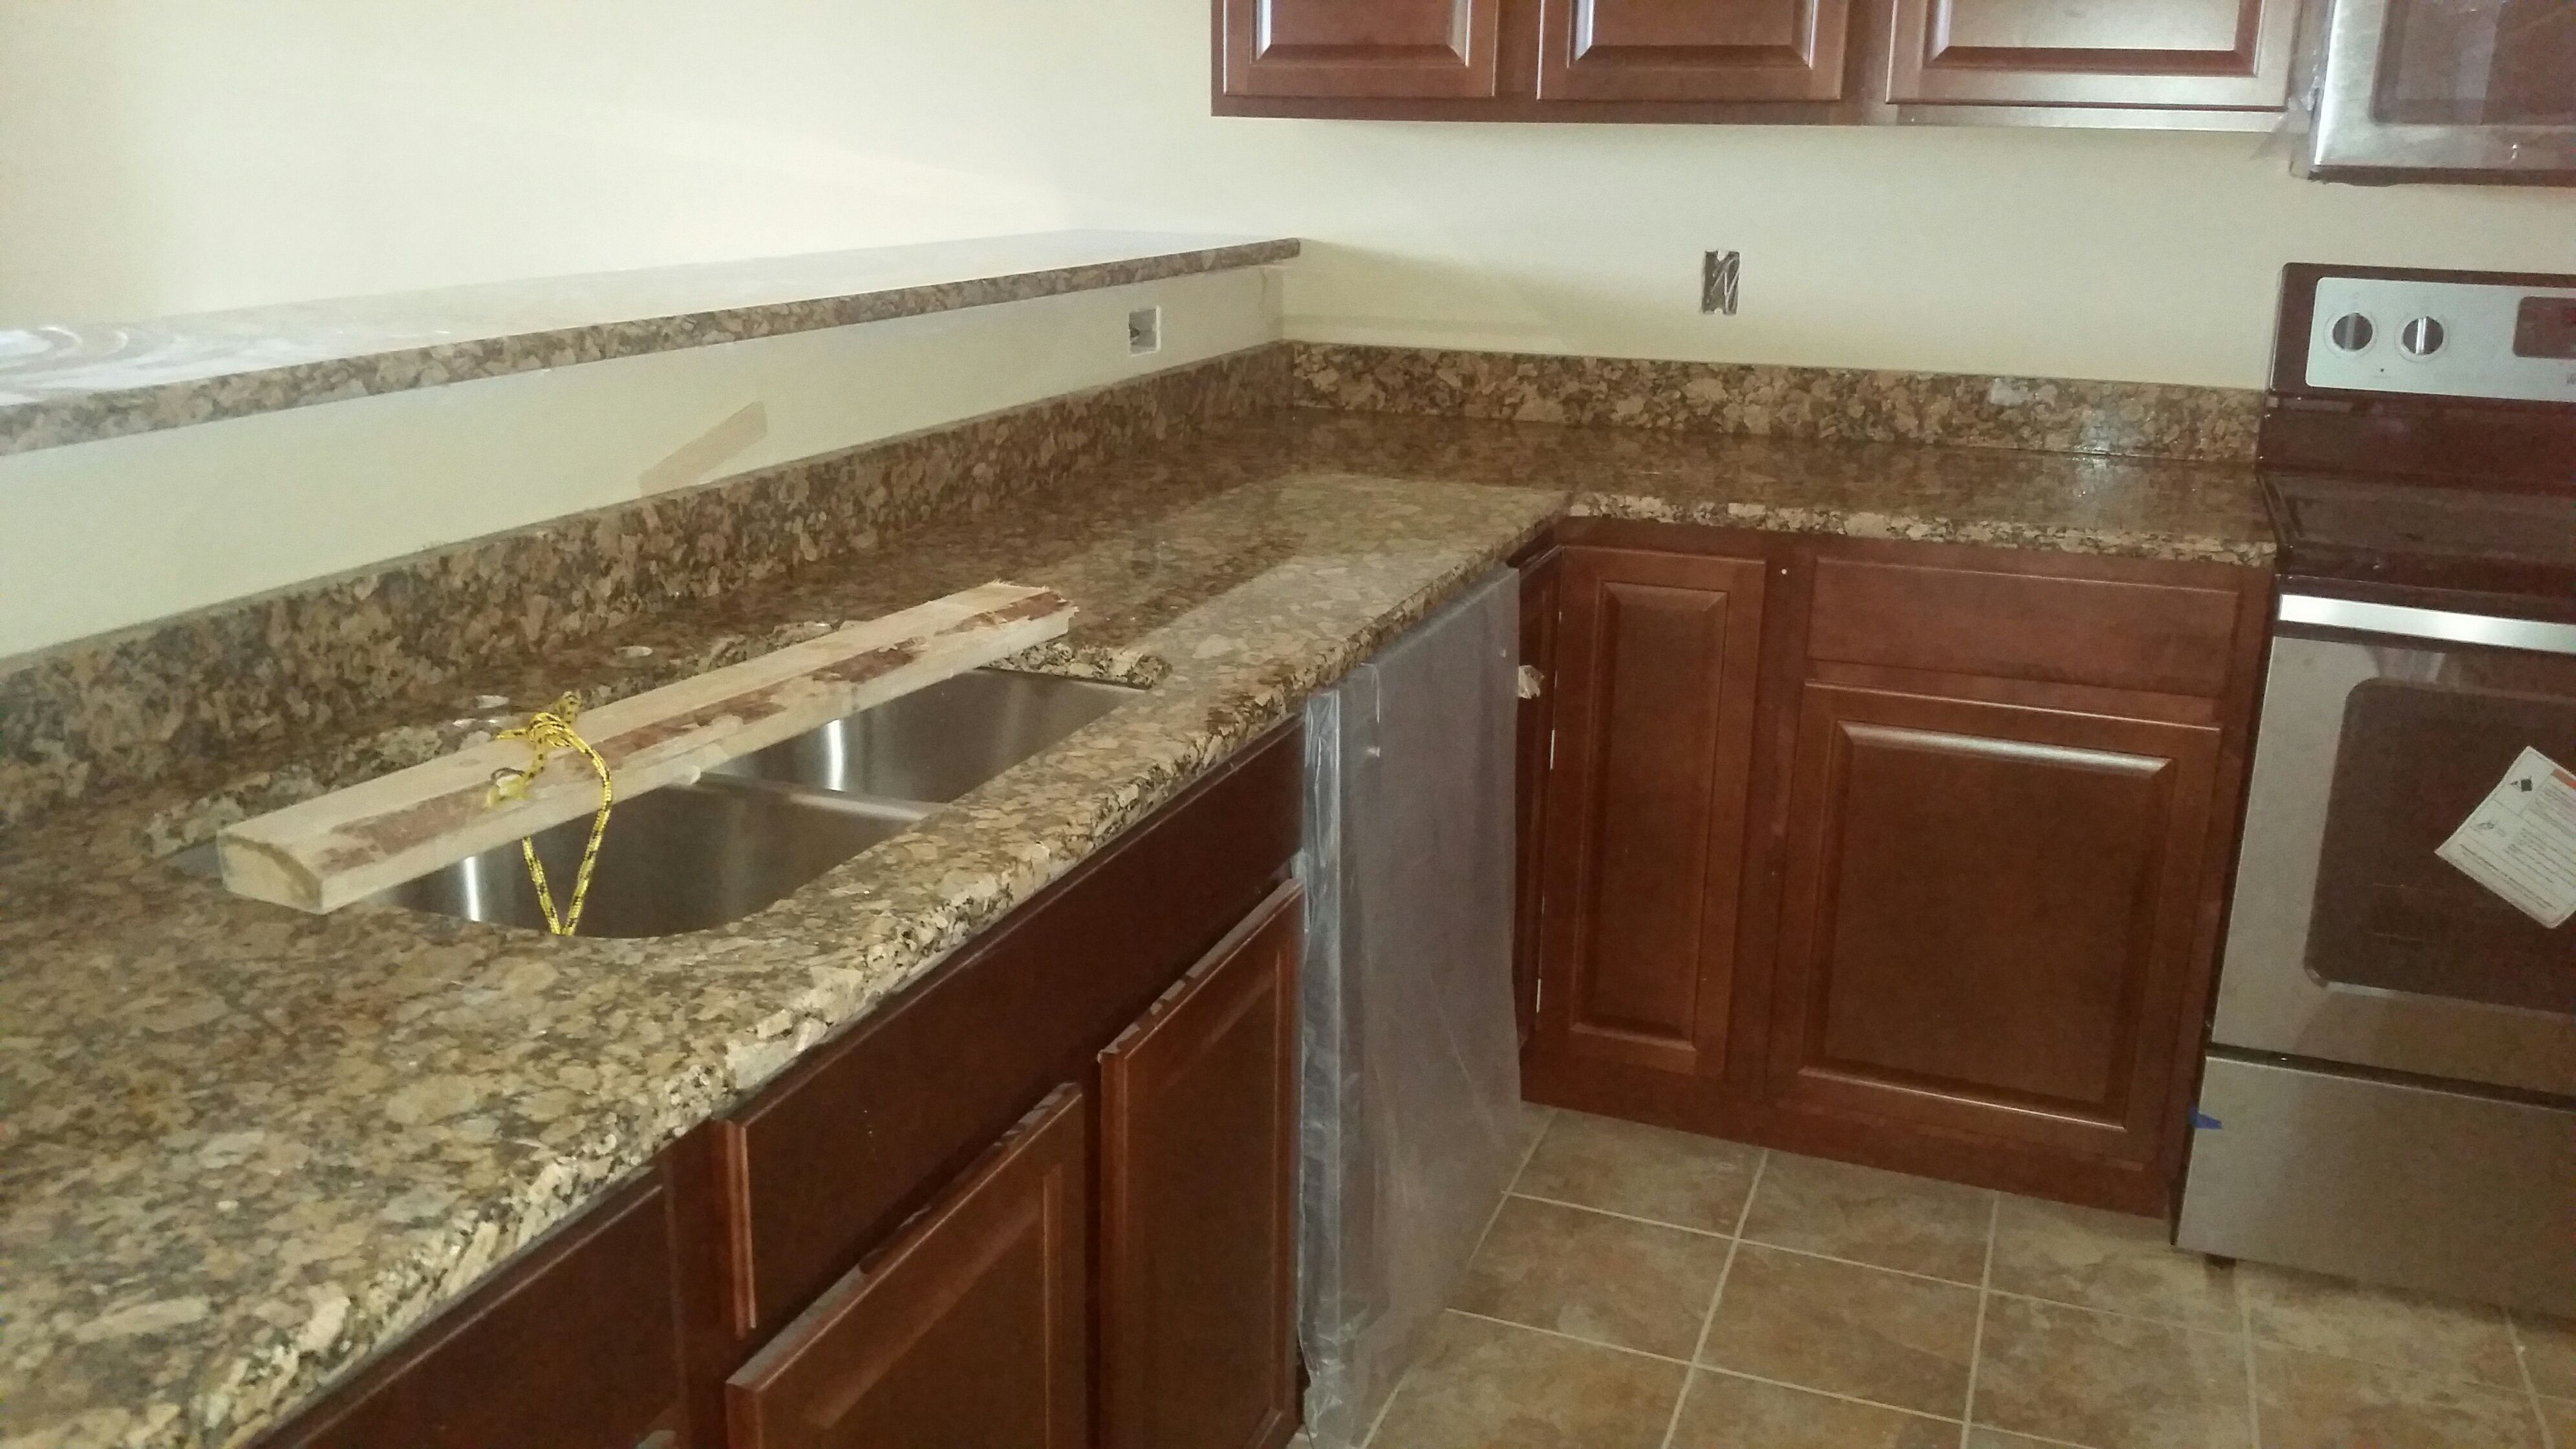 Giallo Fiorito Granite Kitchen Countertop Install For The Coley Family.  Knoxvilleu0027s Stone Interiors. Showroom